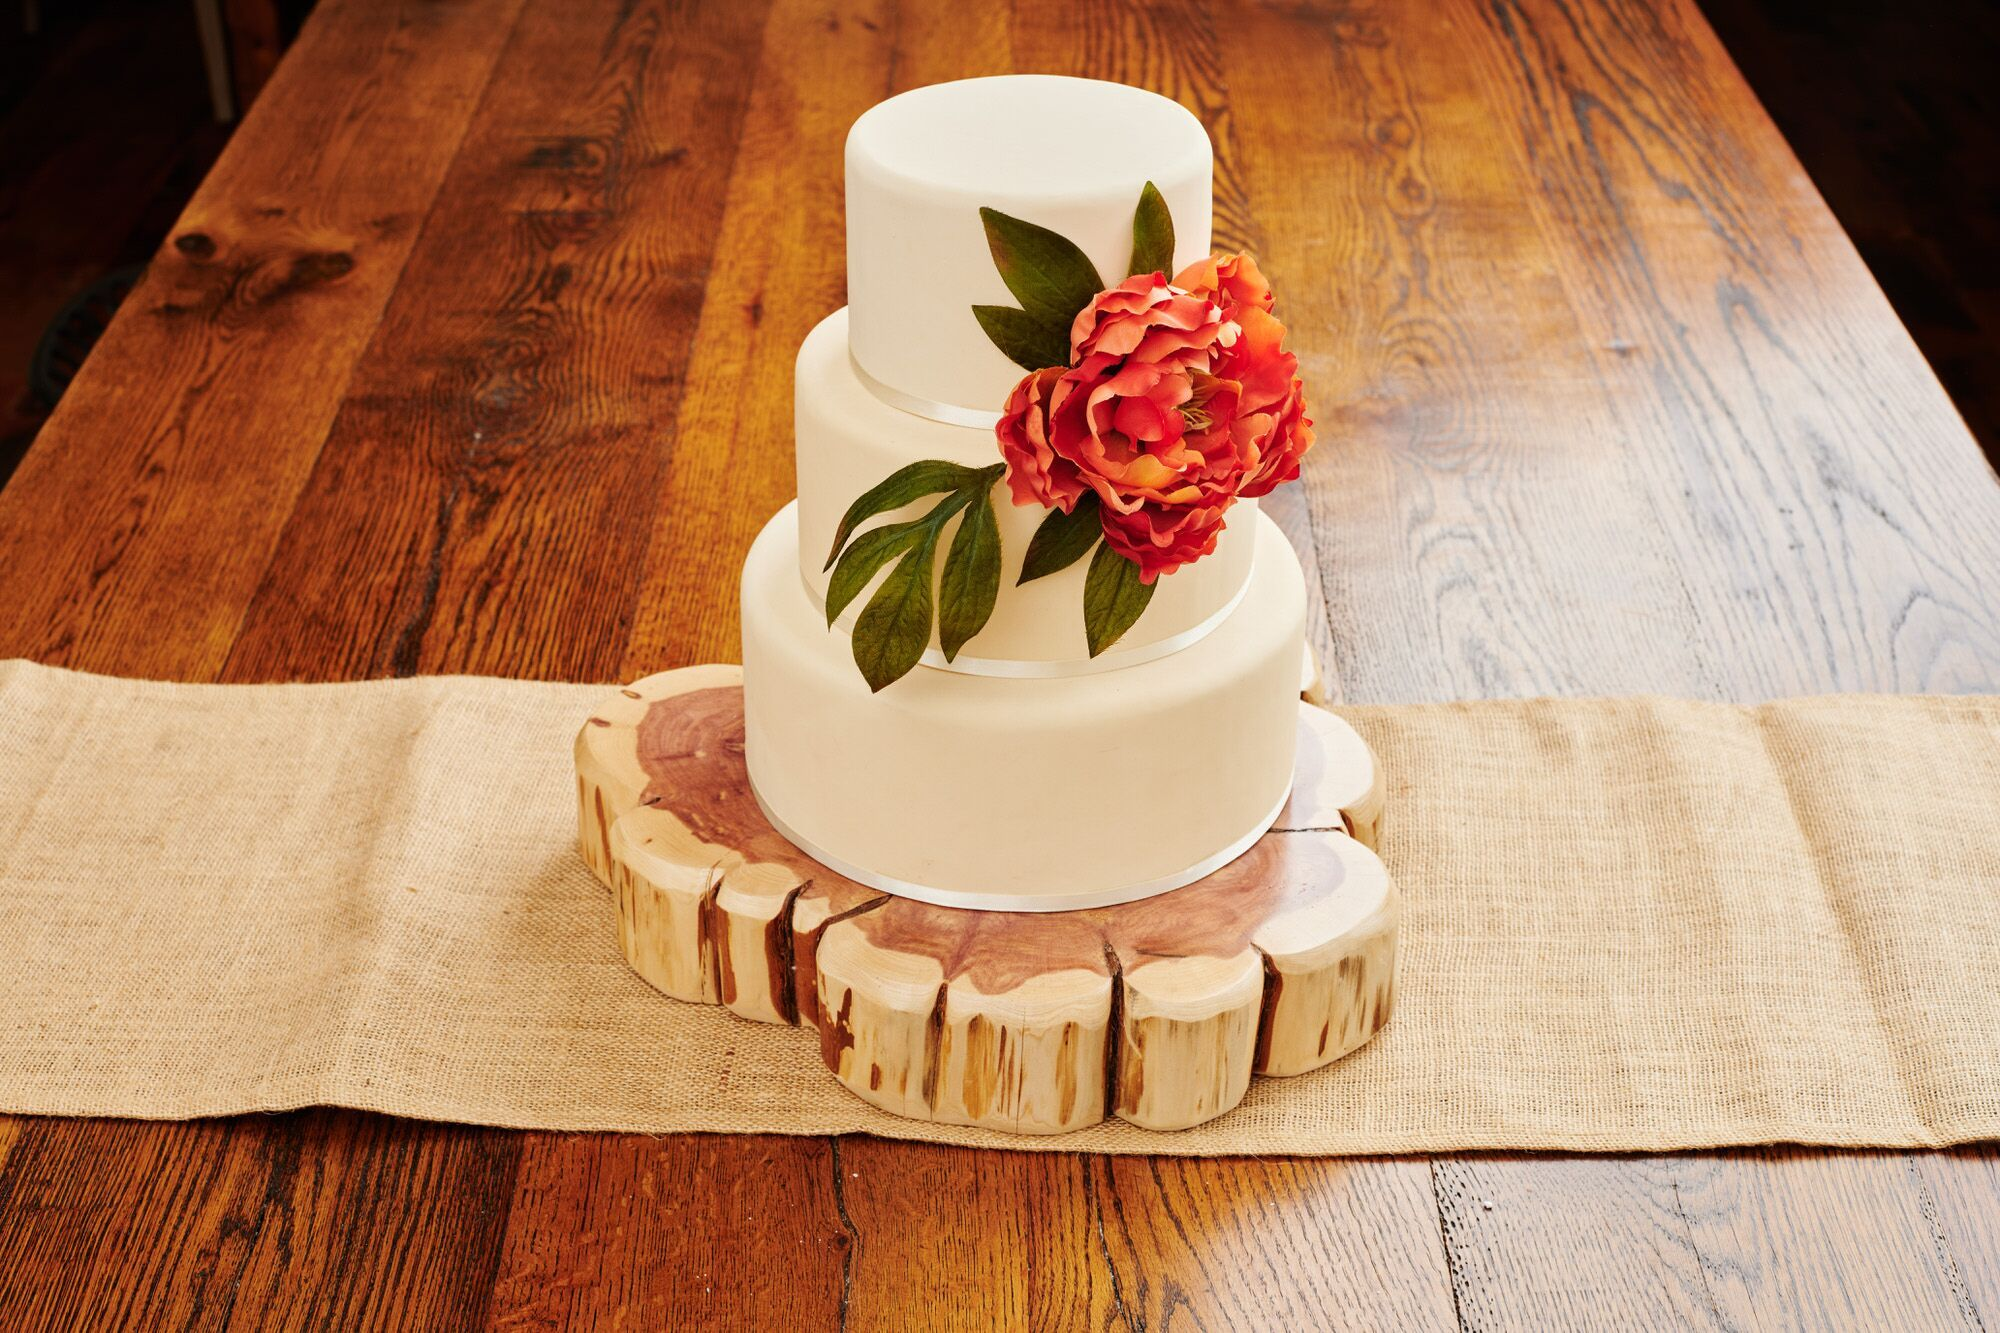 Knaughty Log Co - Knaughty Log Co - Cake Stand